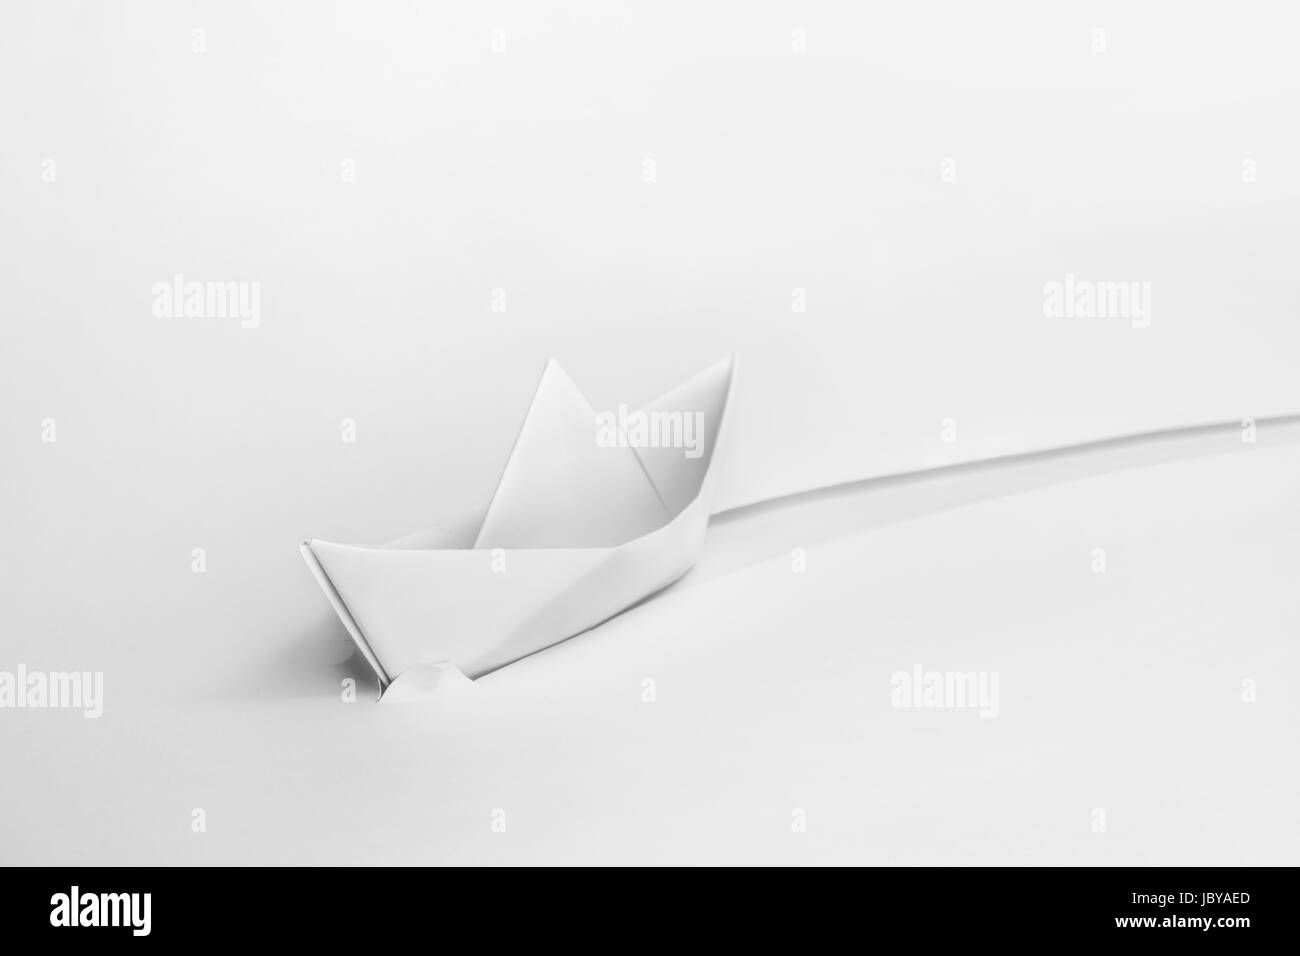 White paper origami boat cuts through paper. - Stock Image